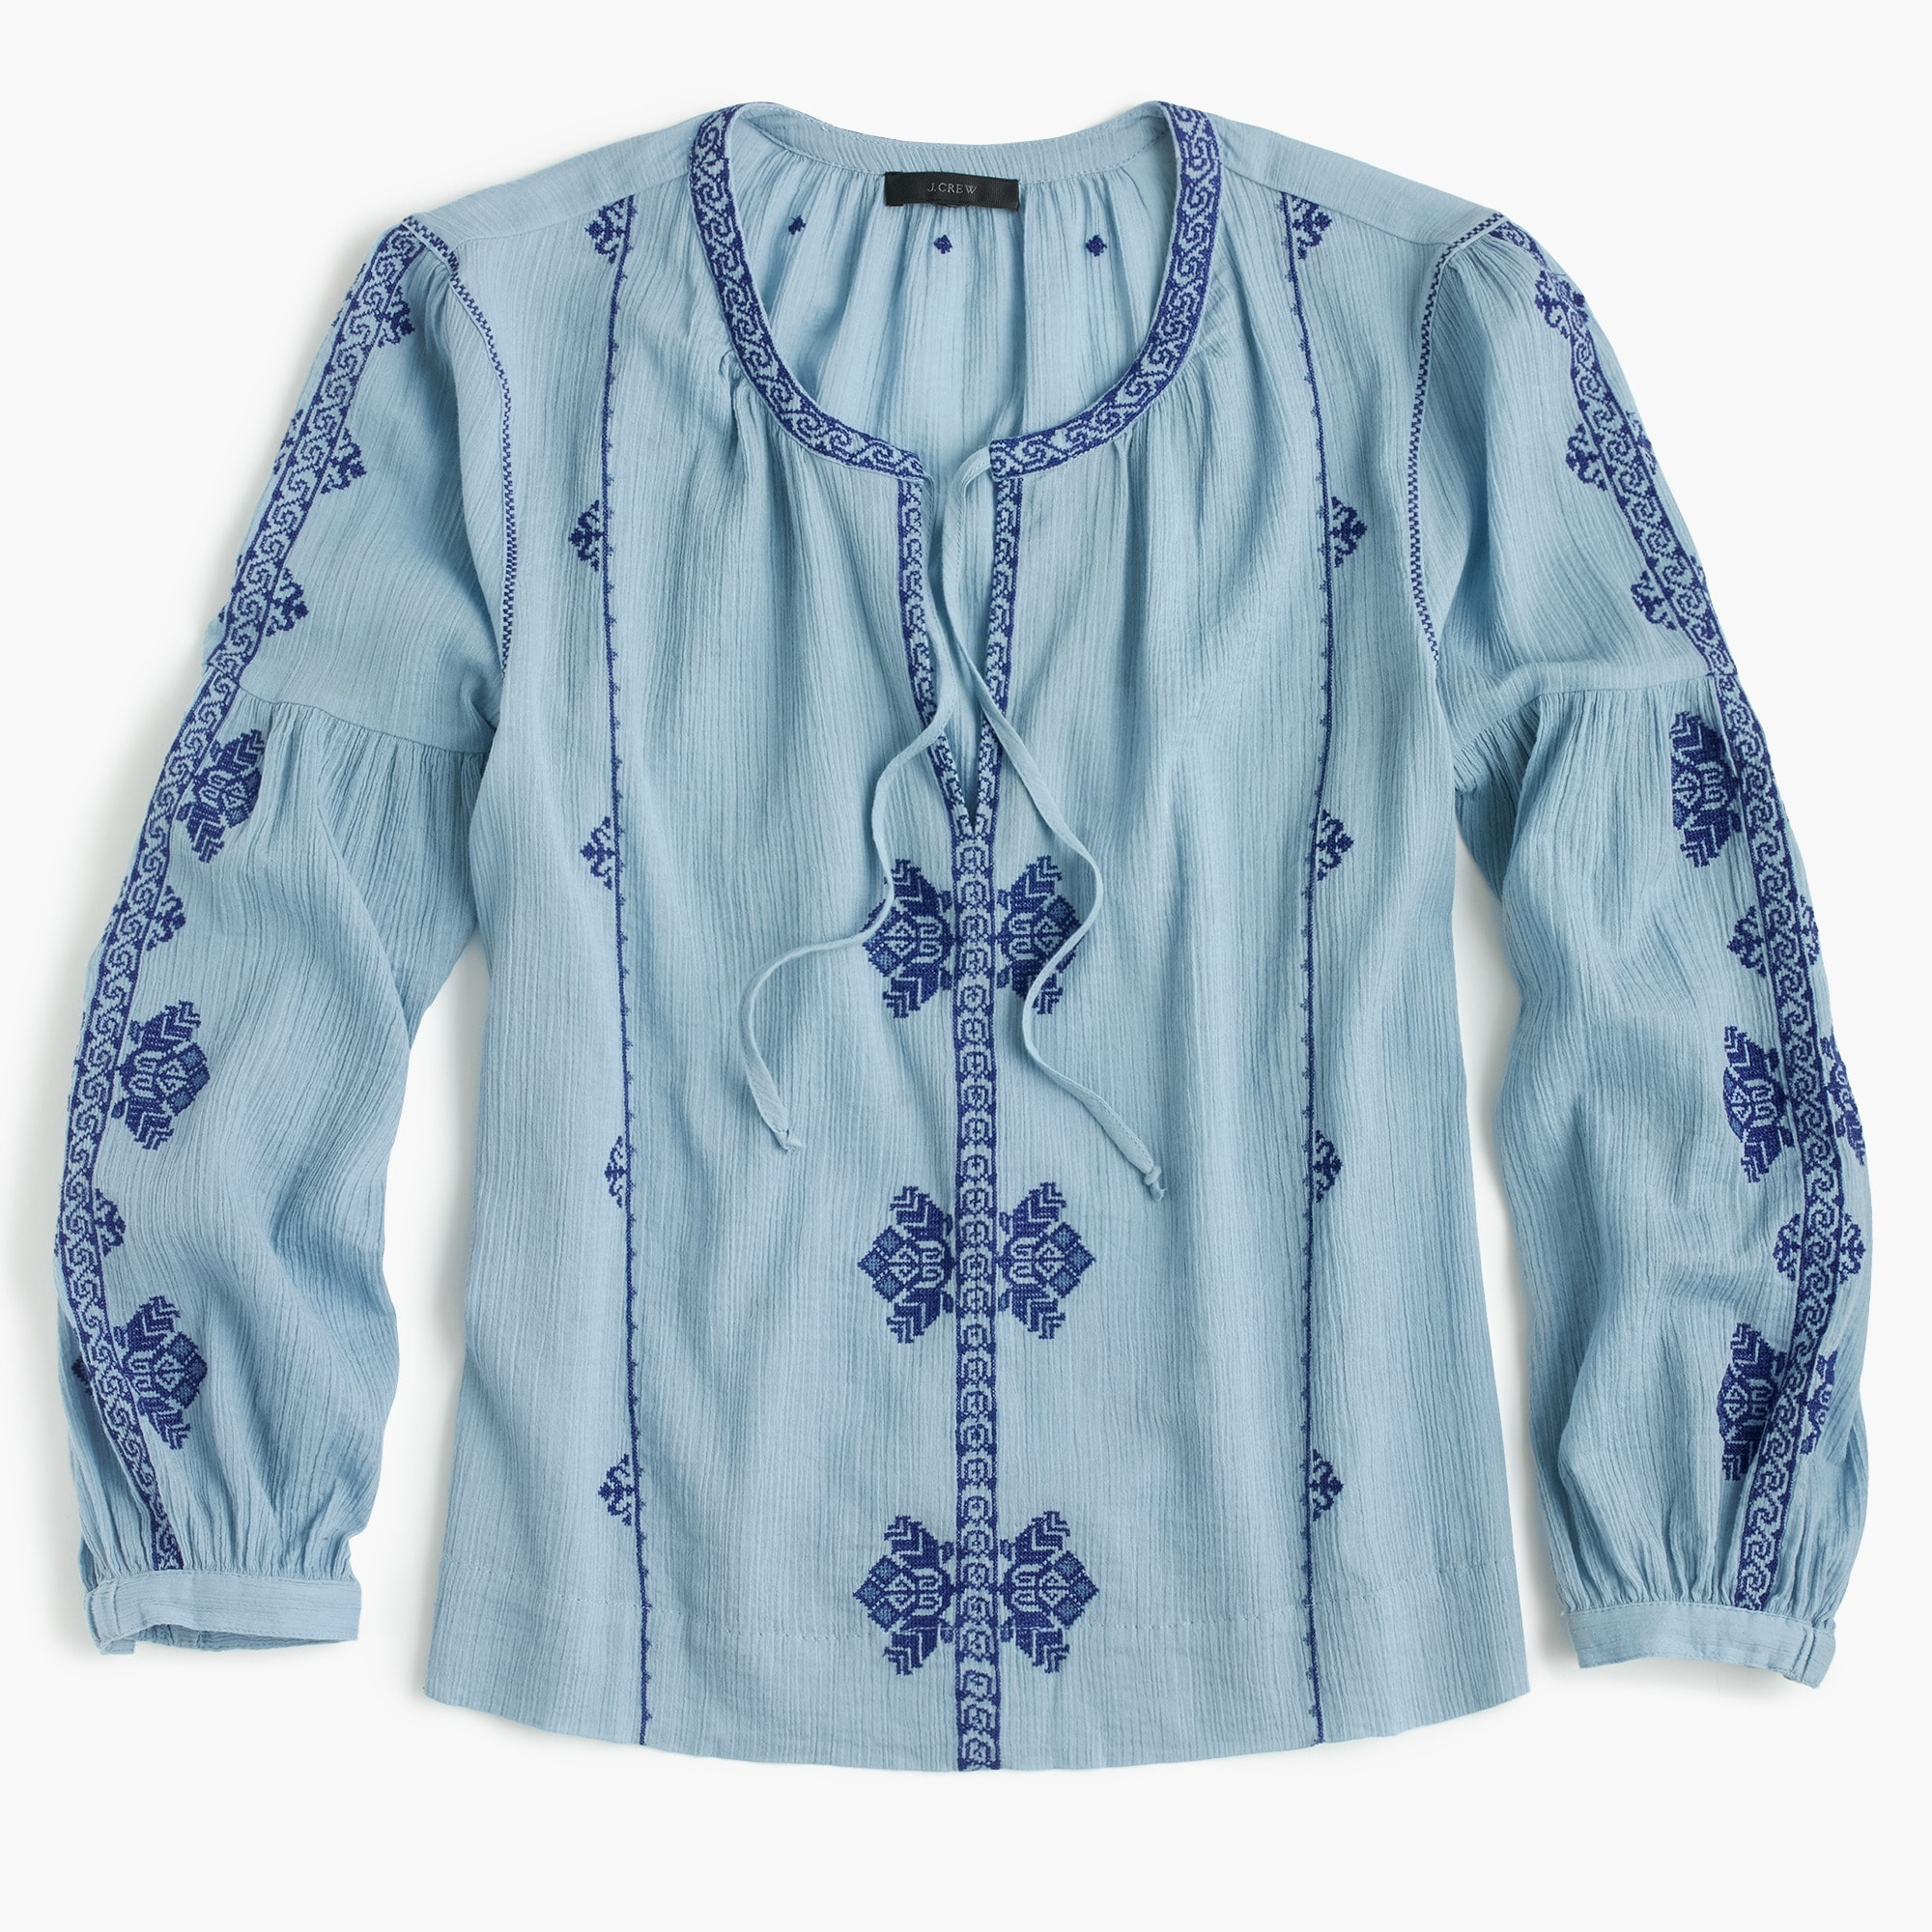 Petite embroidered peasant top